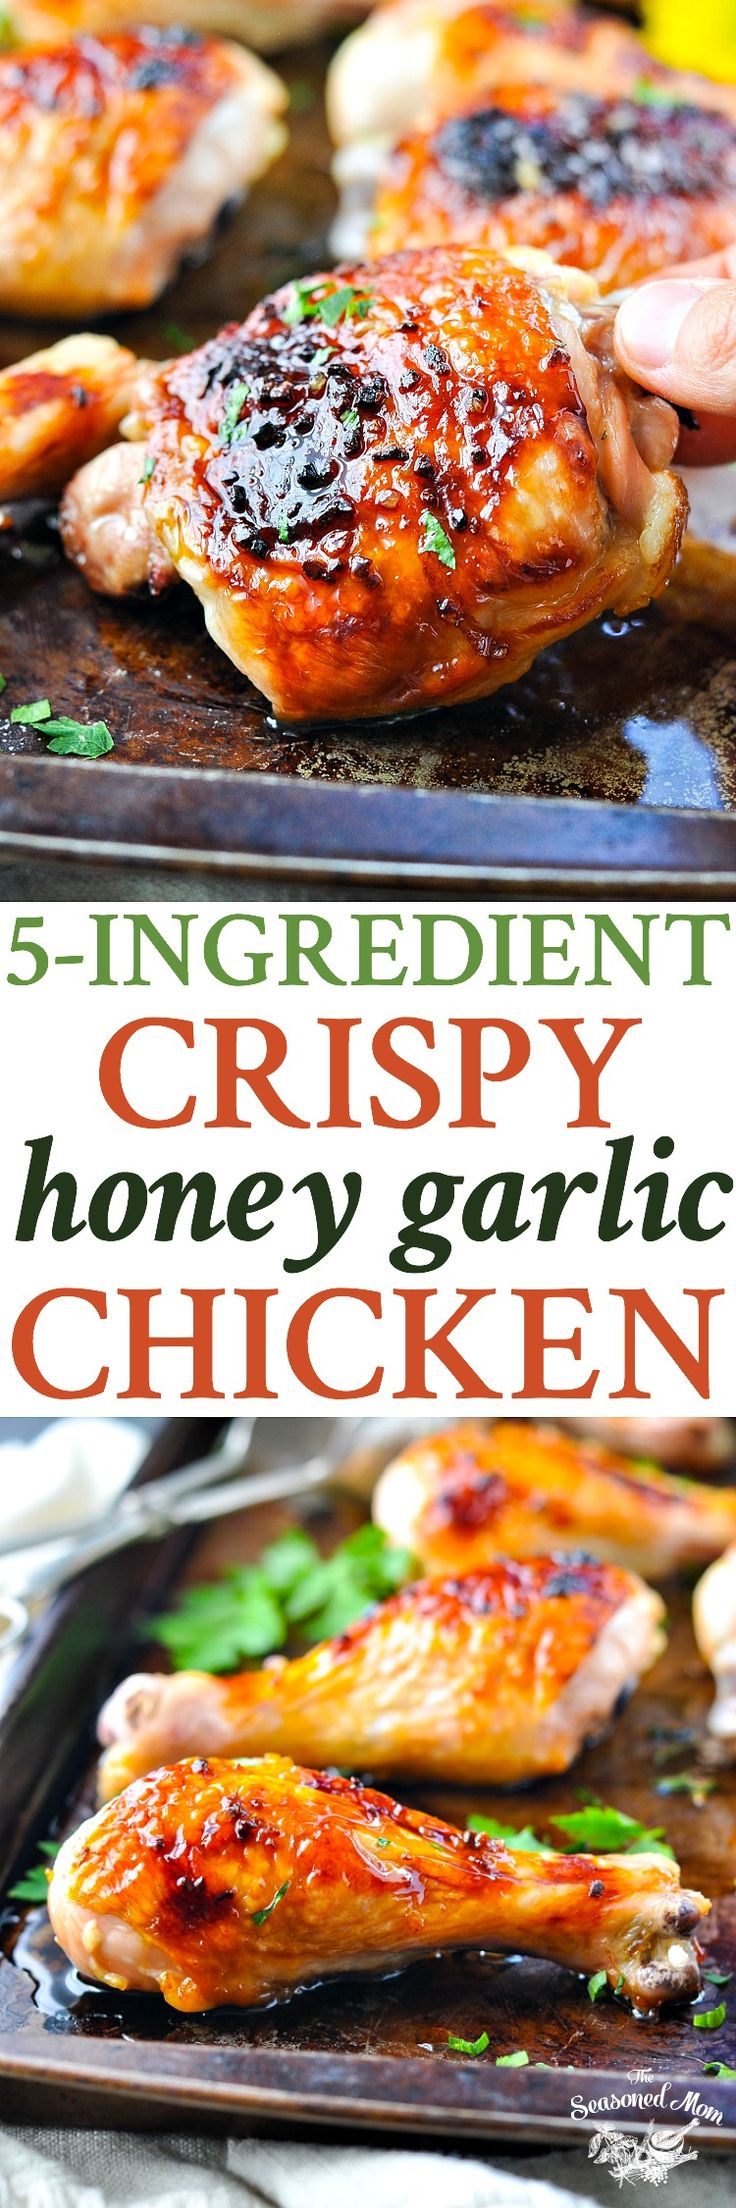 Just 5 minutes of prep for this 5 Ingredient Crispy Honey Garlic Chicken dinner! Easy Dinner Recipes | Dinner Ideas | Easy Chicken Recipes | Chicken Thigh Recipes